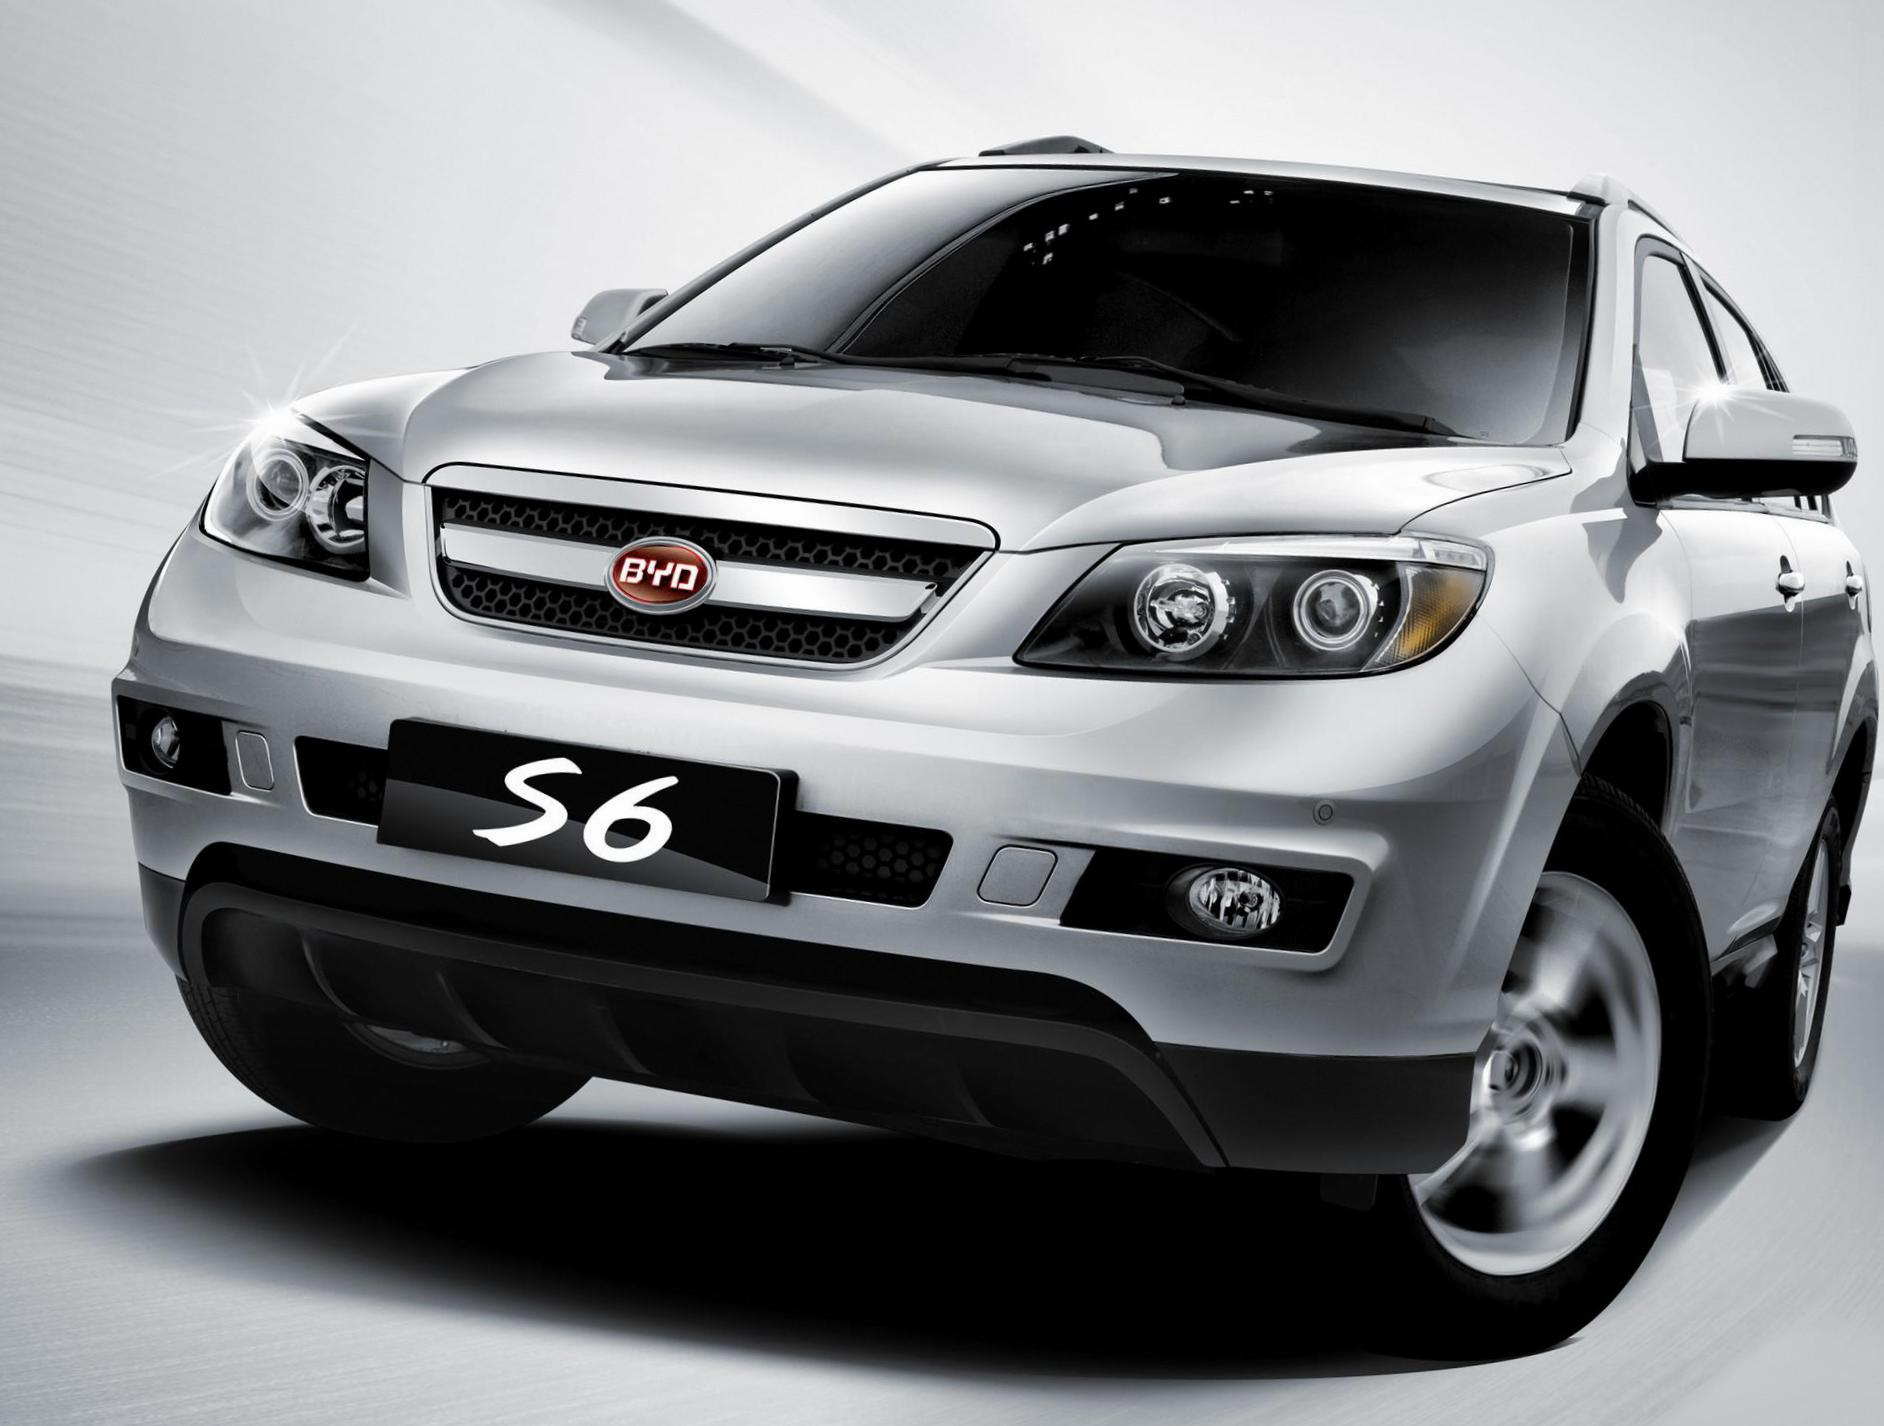 BYD S6 new 2011